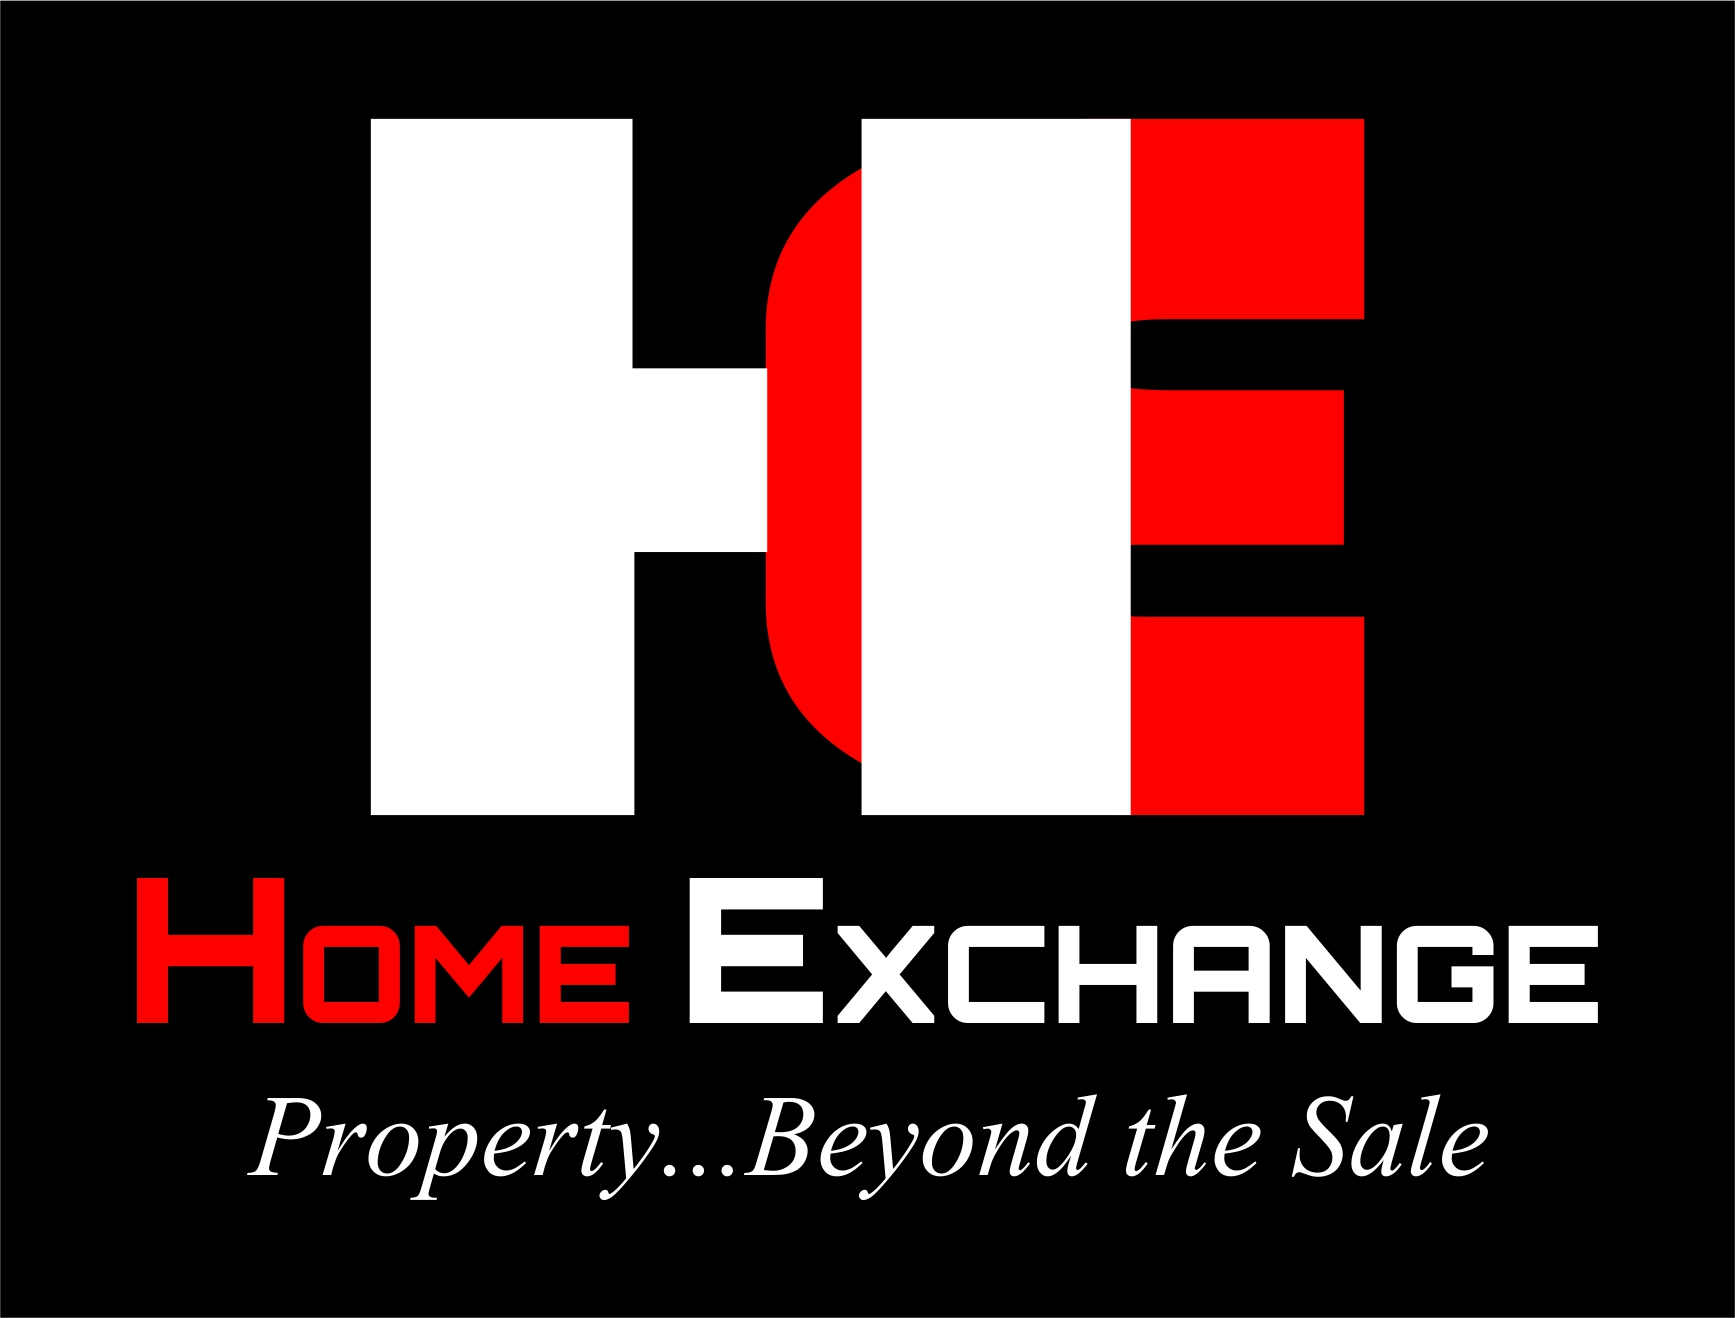 Home Exchange Property